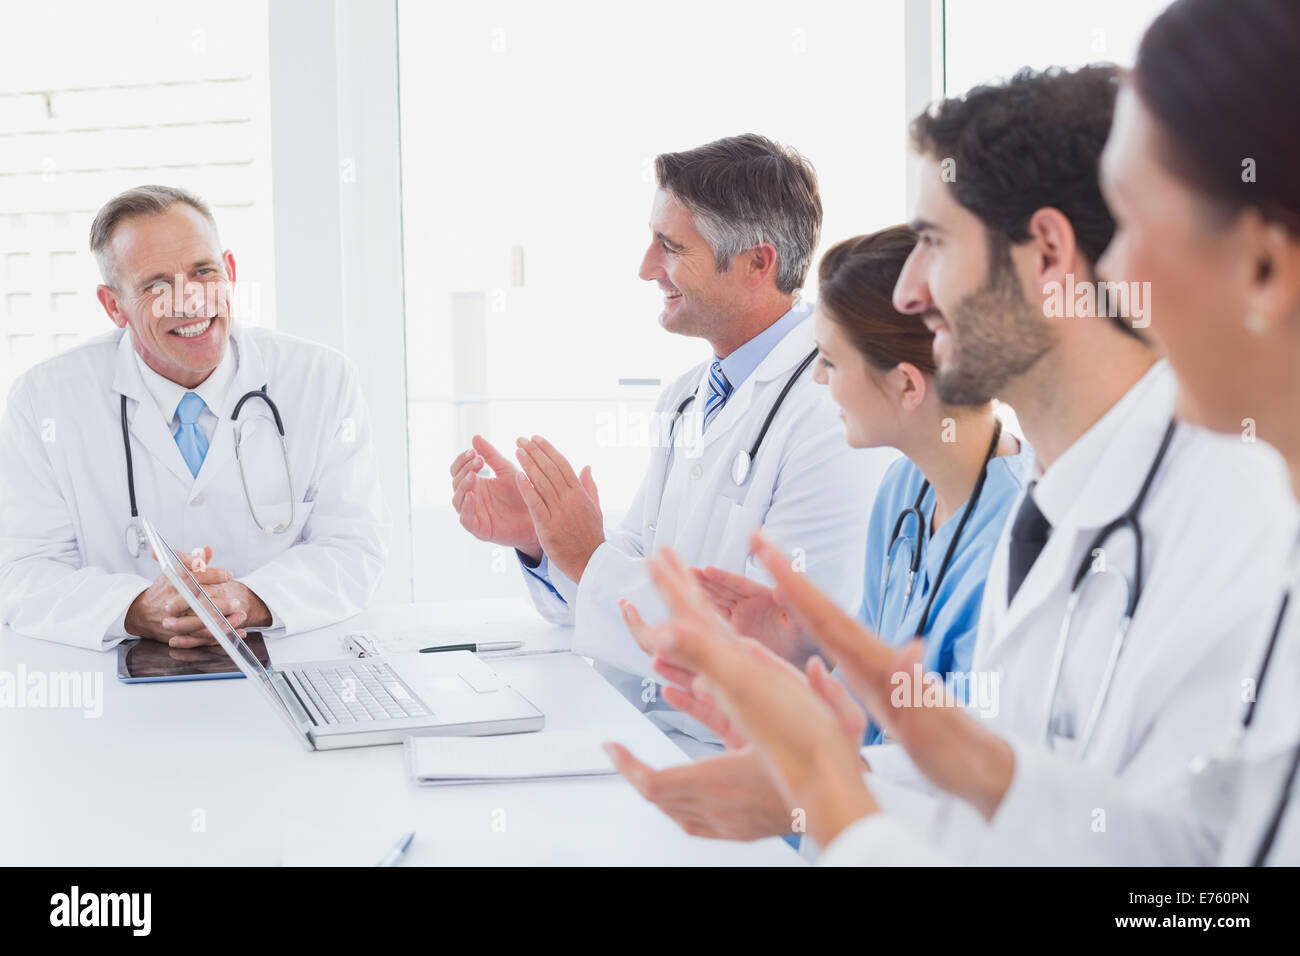 Doctors applauding a fellow doctor - Stock Image